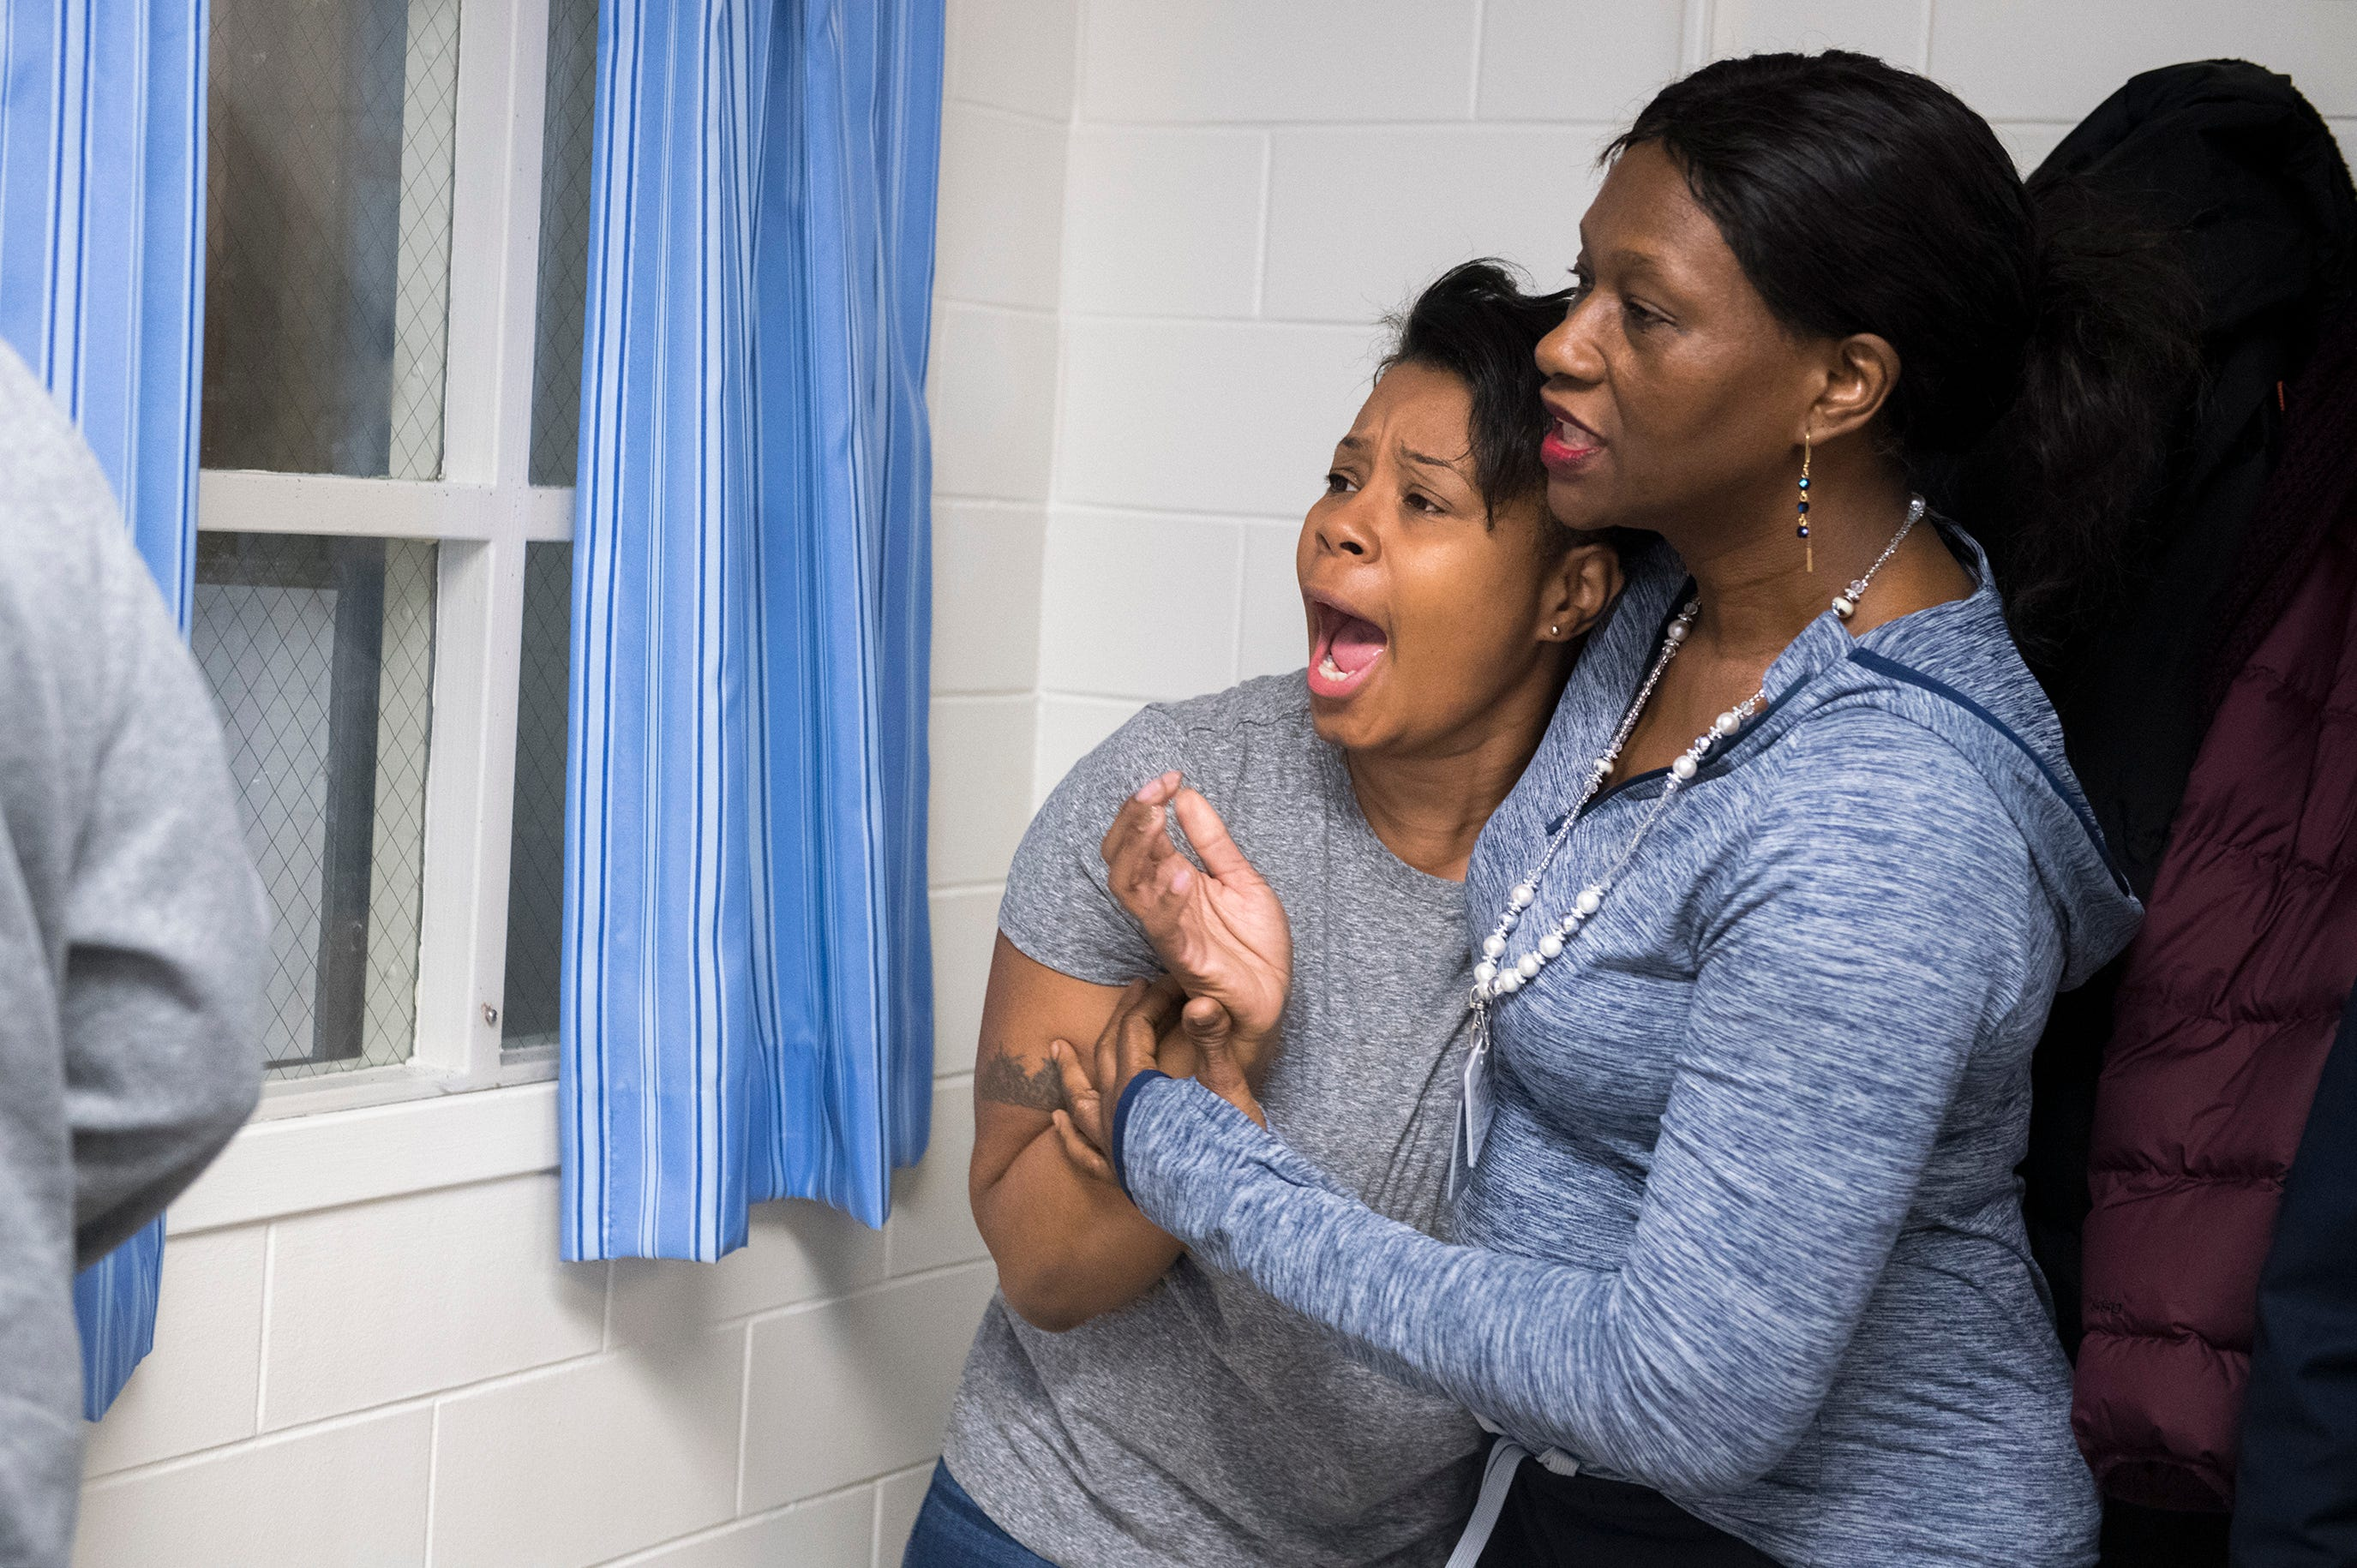 Human service techs Sarah Huntley, left, and Christine Mason act out a training simulation at Ancora Psychiatric Hospital in Winslow Township, N.J.